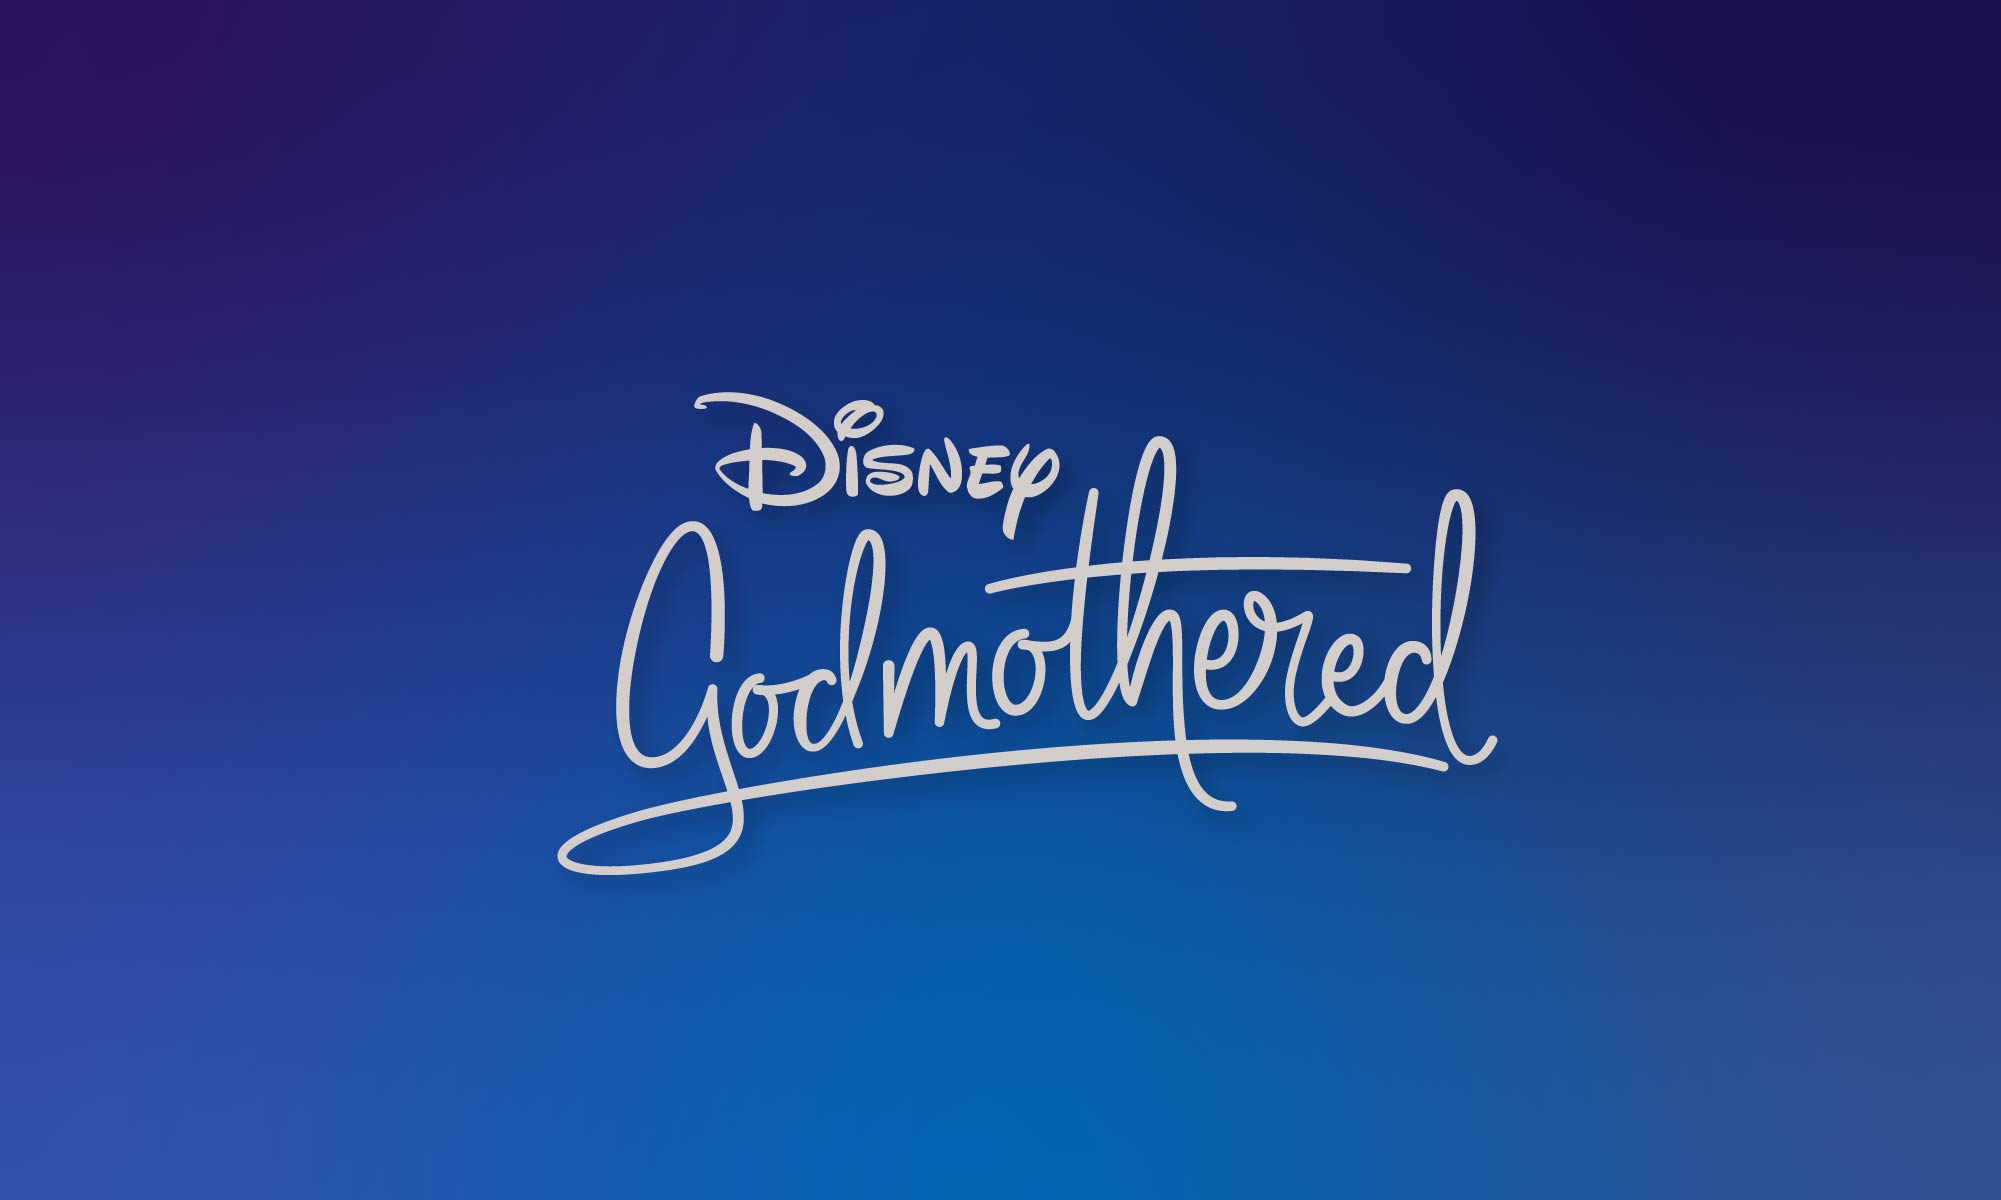 Godmothered Disney Title Treatment by Hoodzpah featuring a midcentury modern script